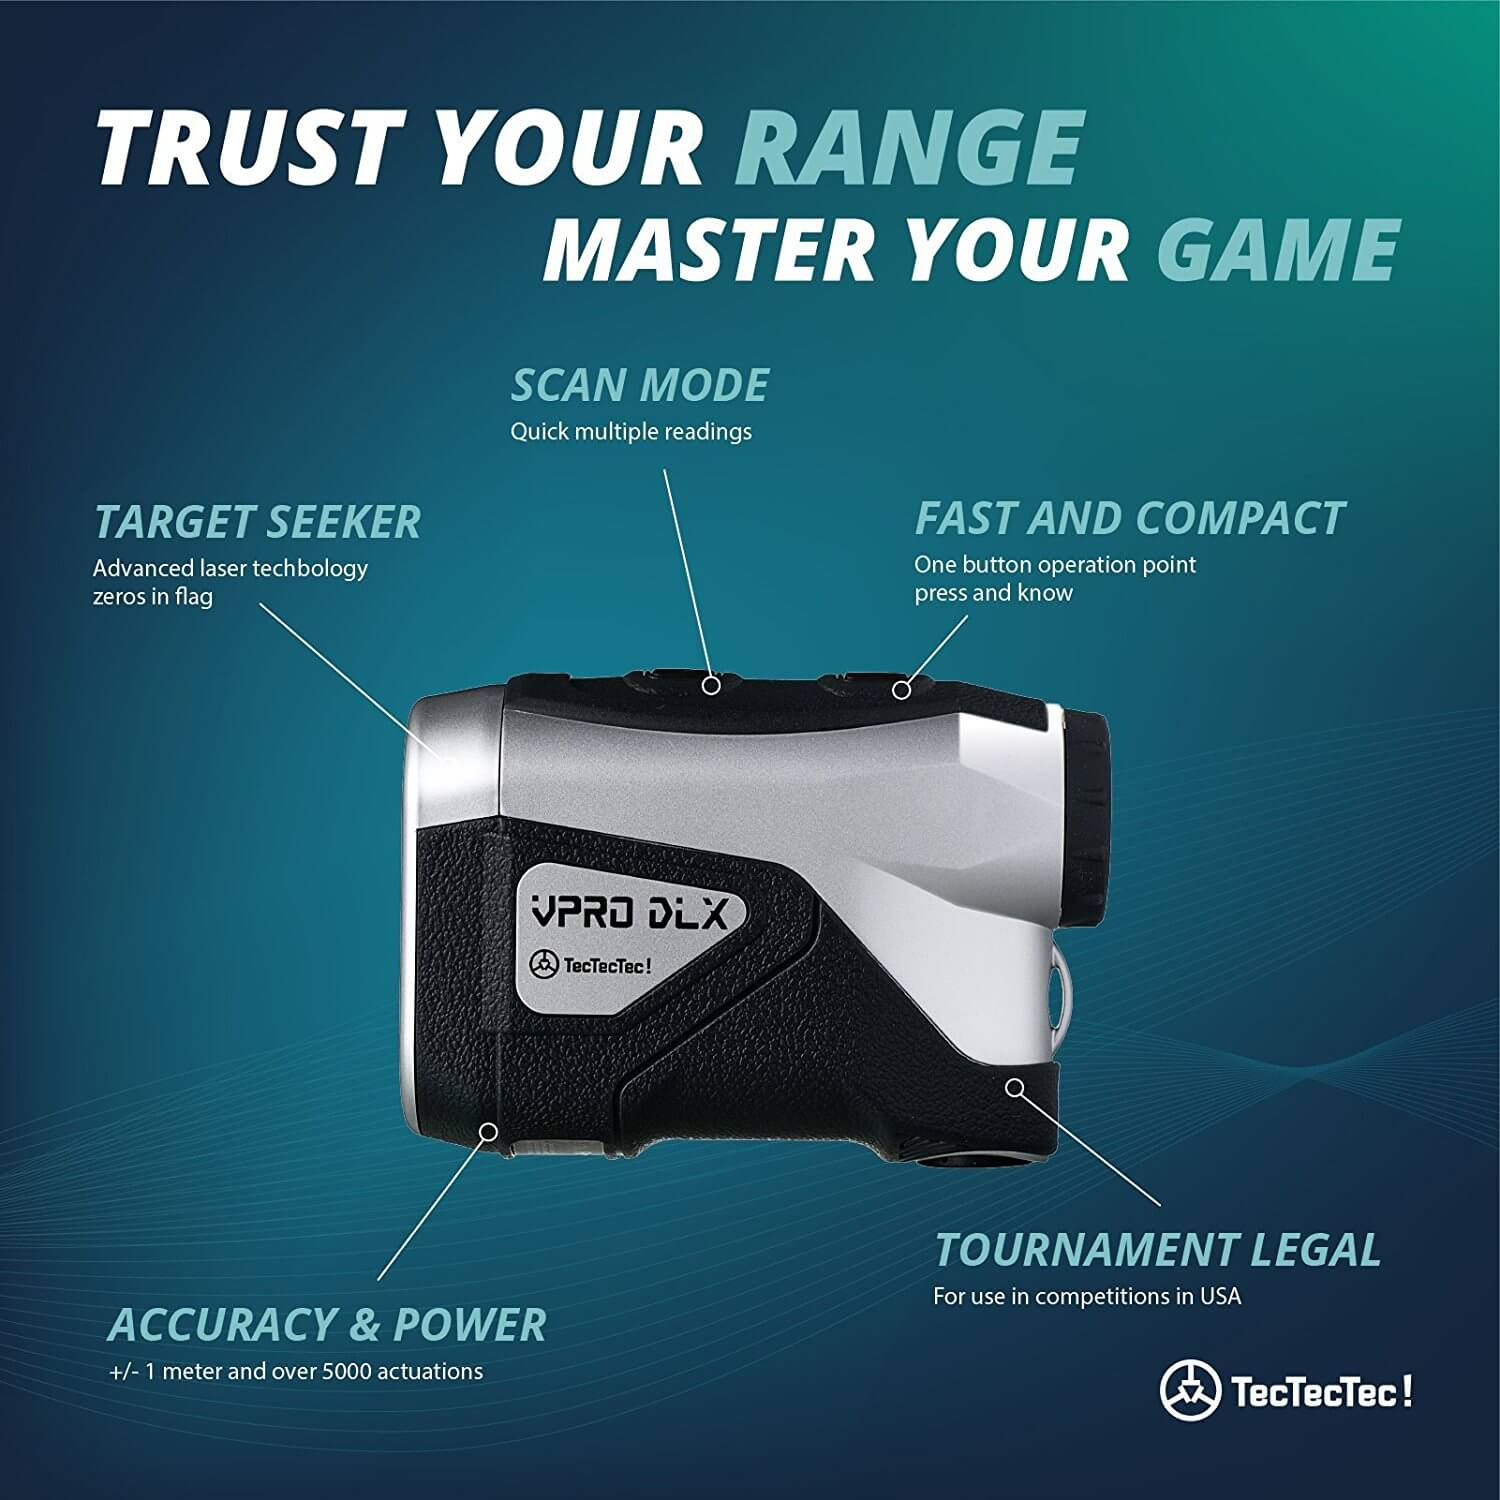 TecTecTec Trust Your Range Master Your Game VPRO DLX Rangefinder Technology